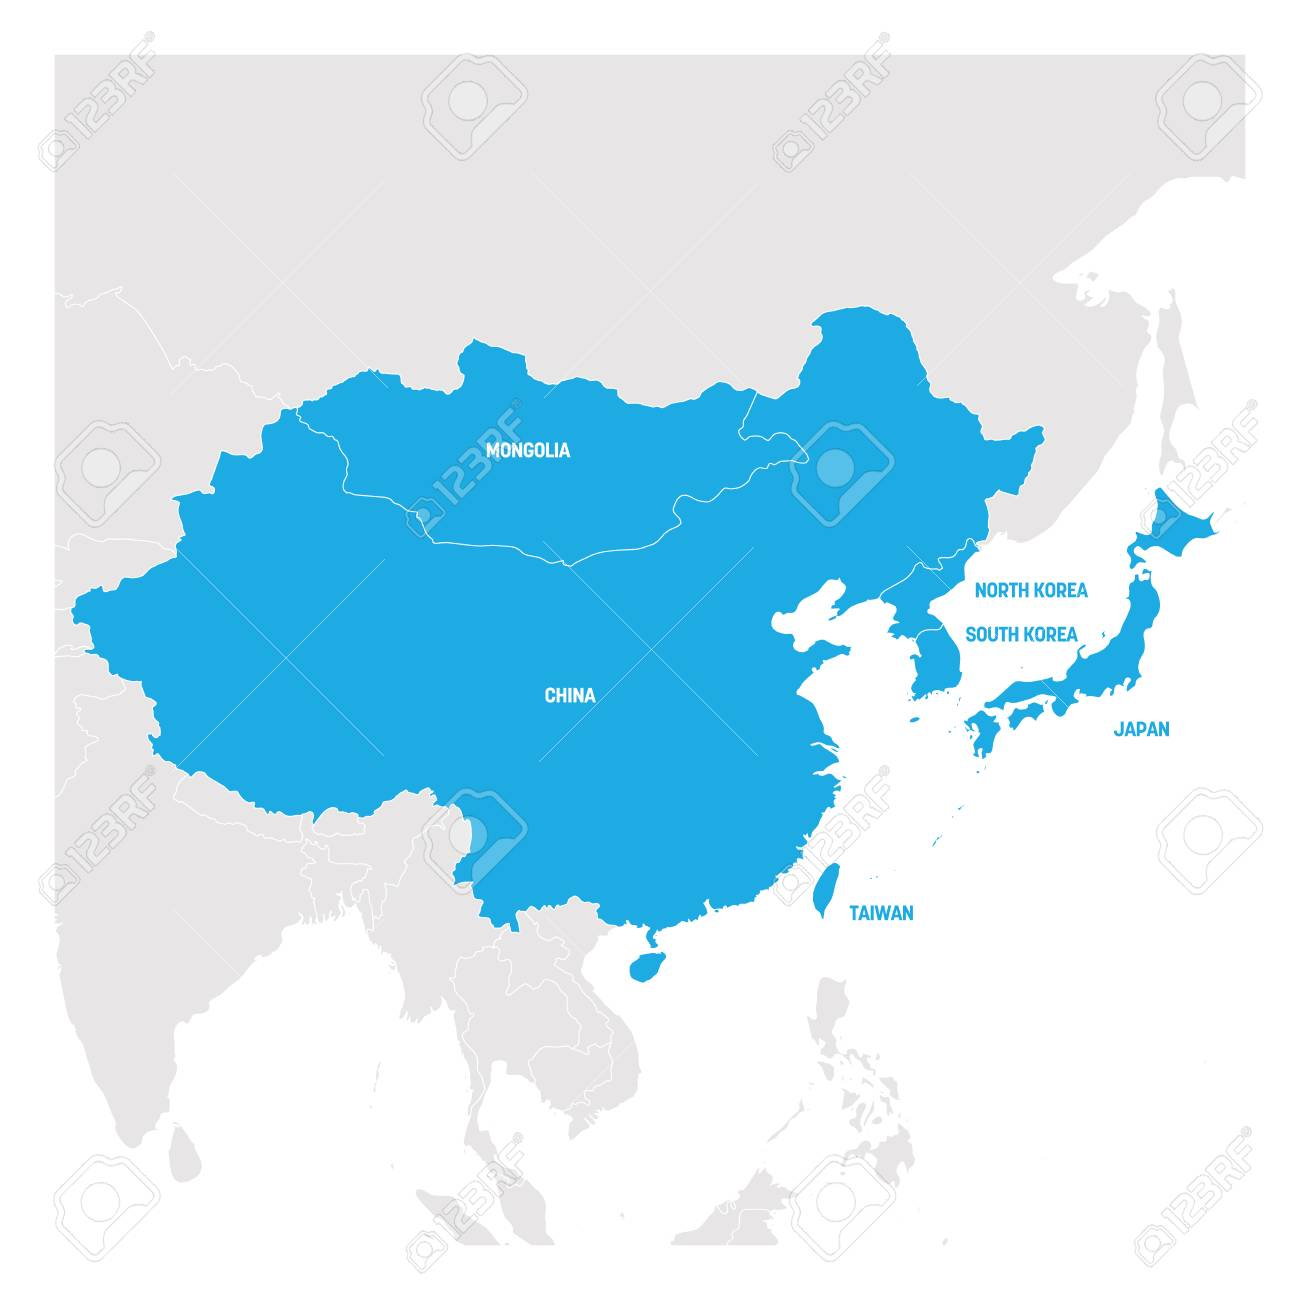 East Asia Region. Map of countries in eastern Asia. Vector illustration. - 123249010